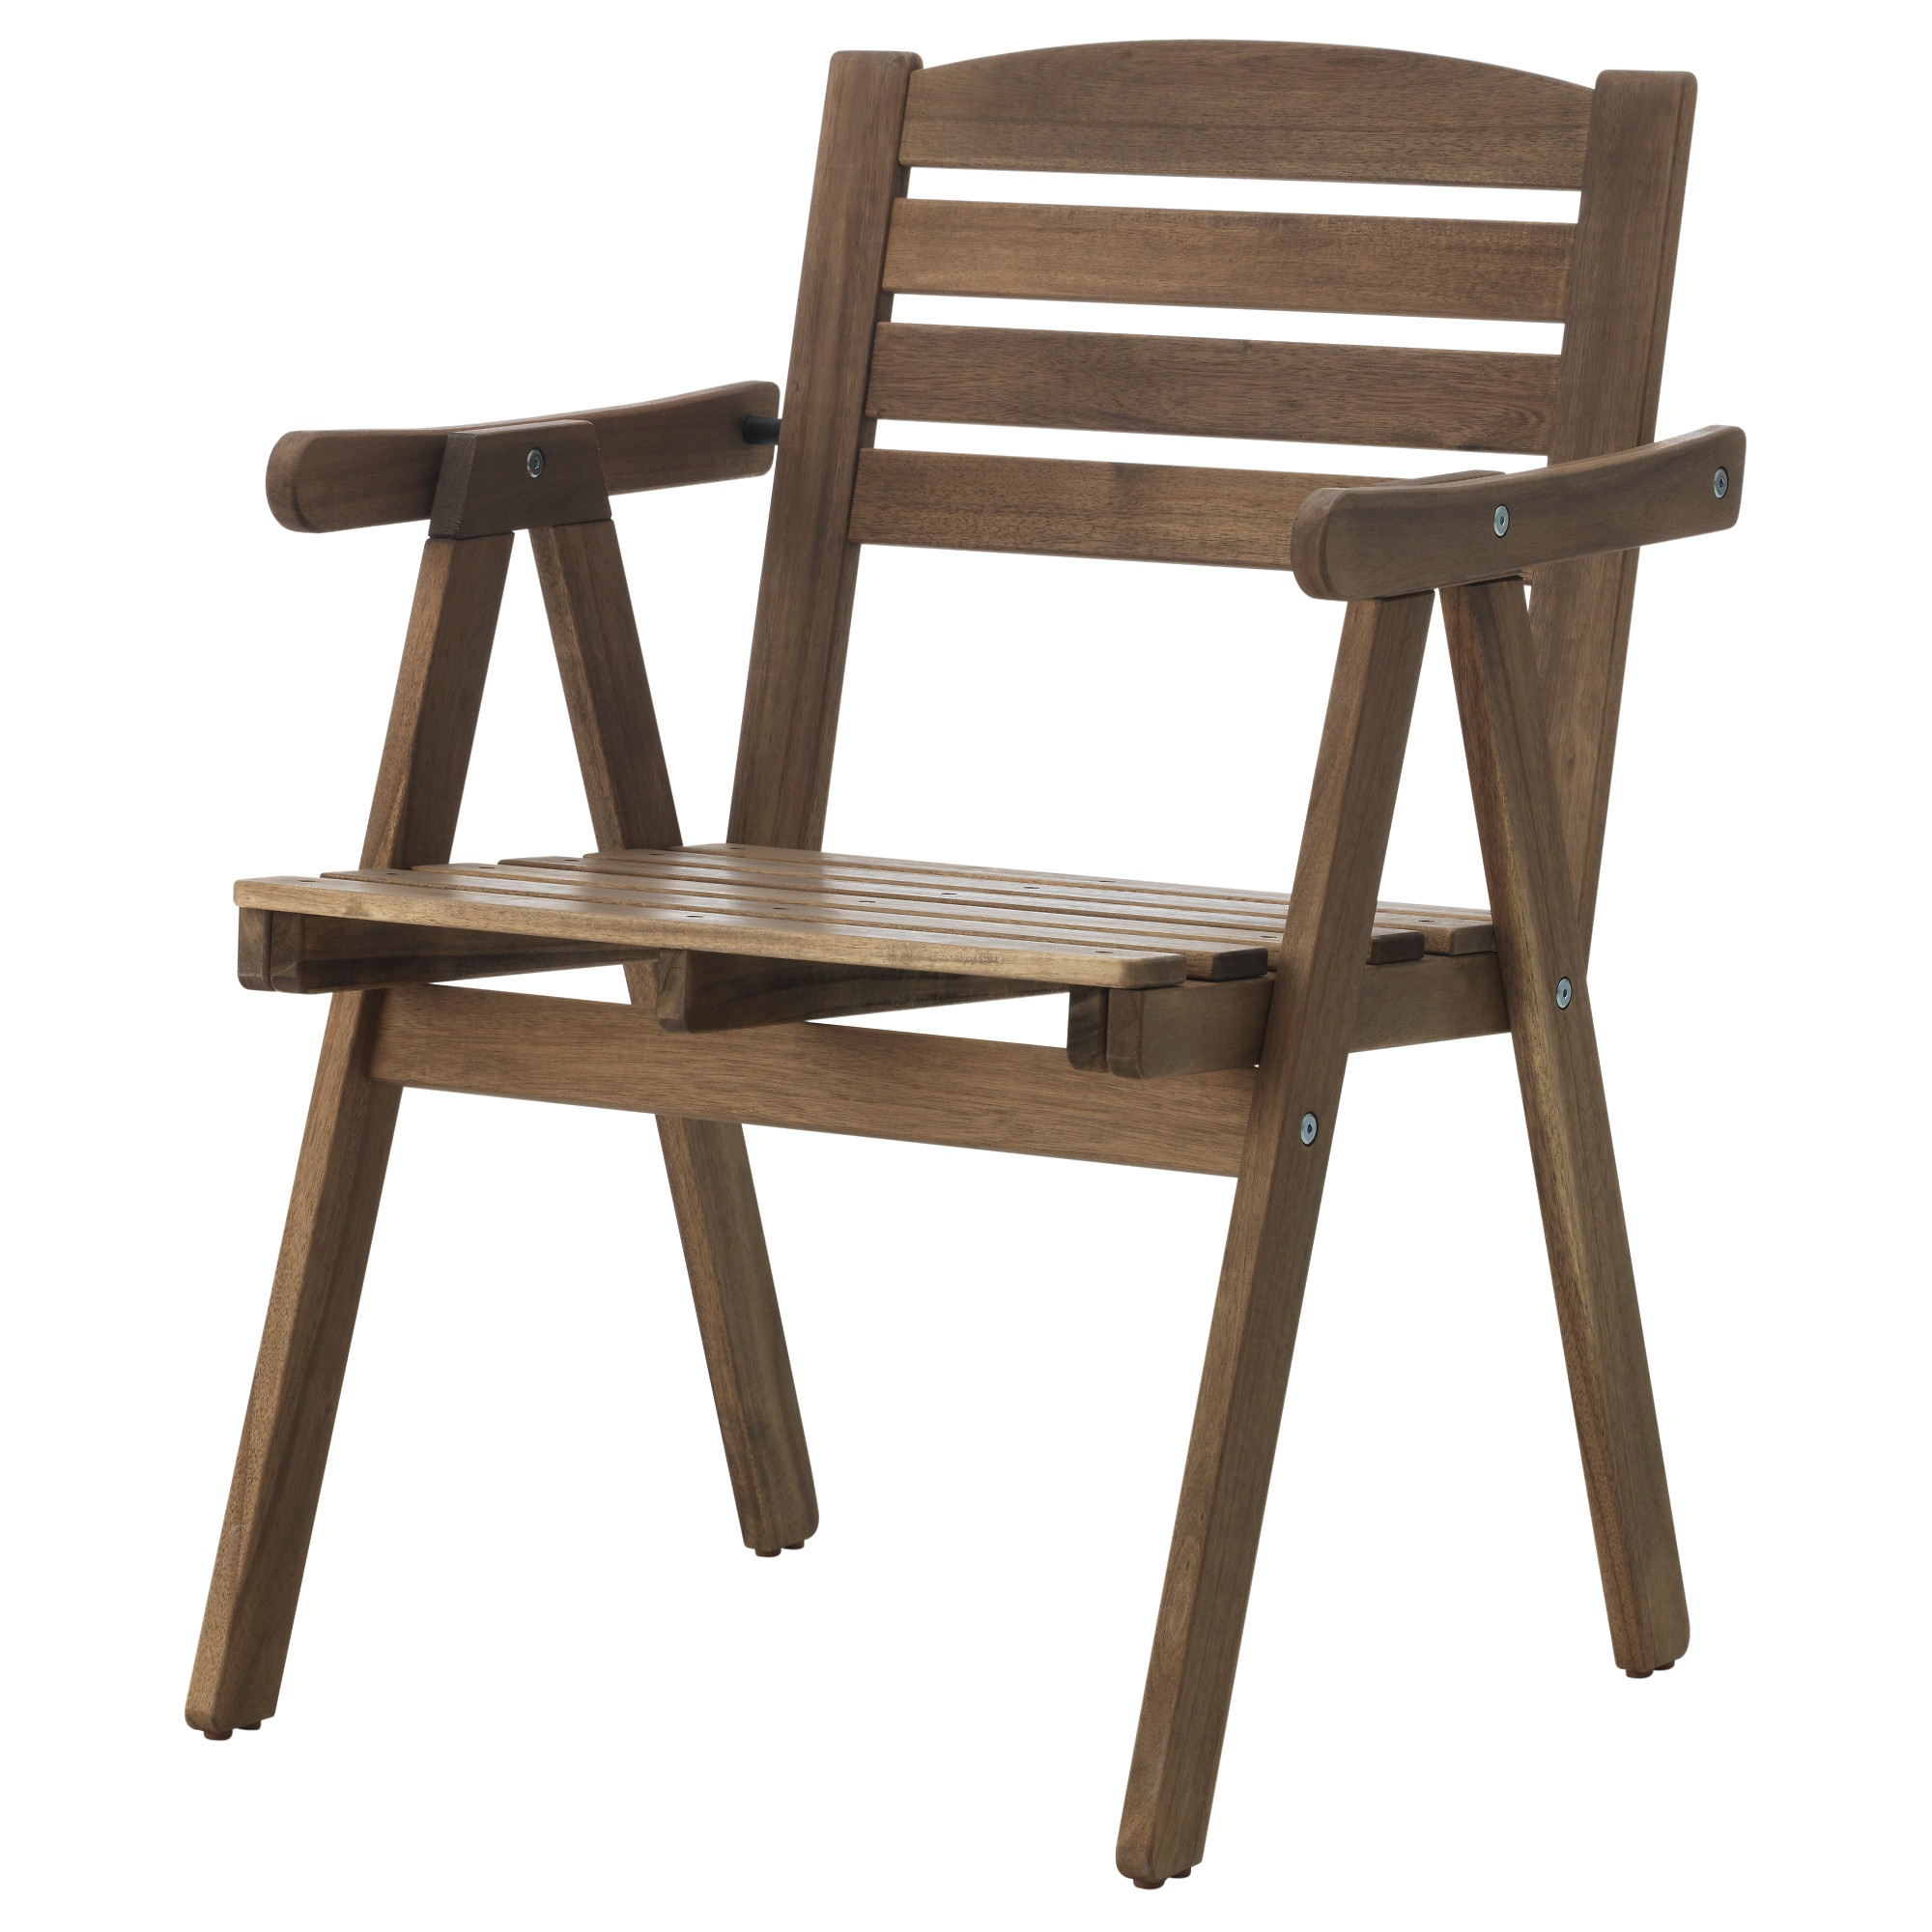 Outdoor dining chairs IKEA